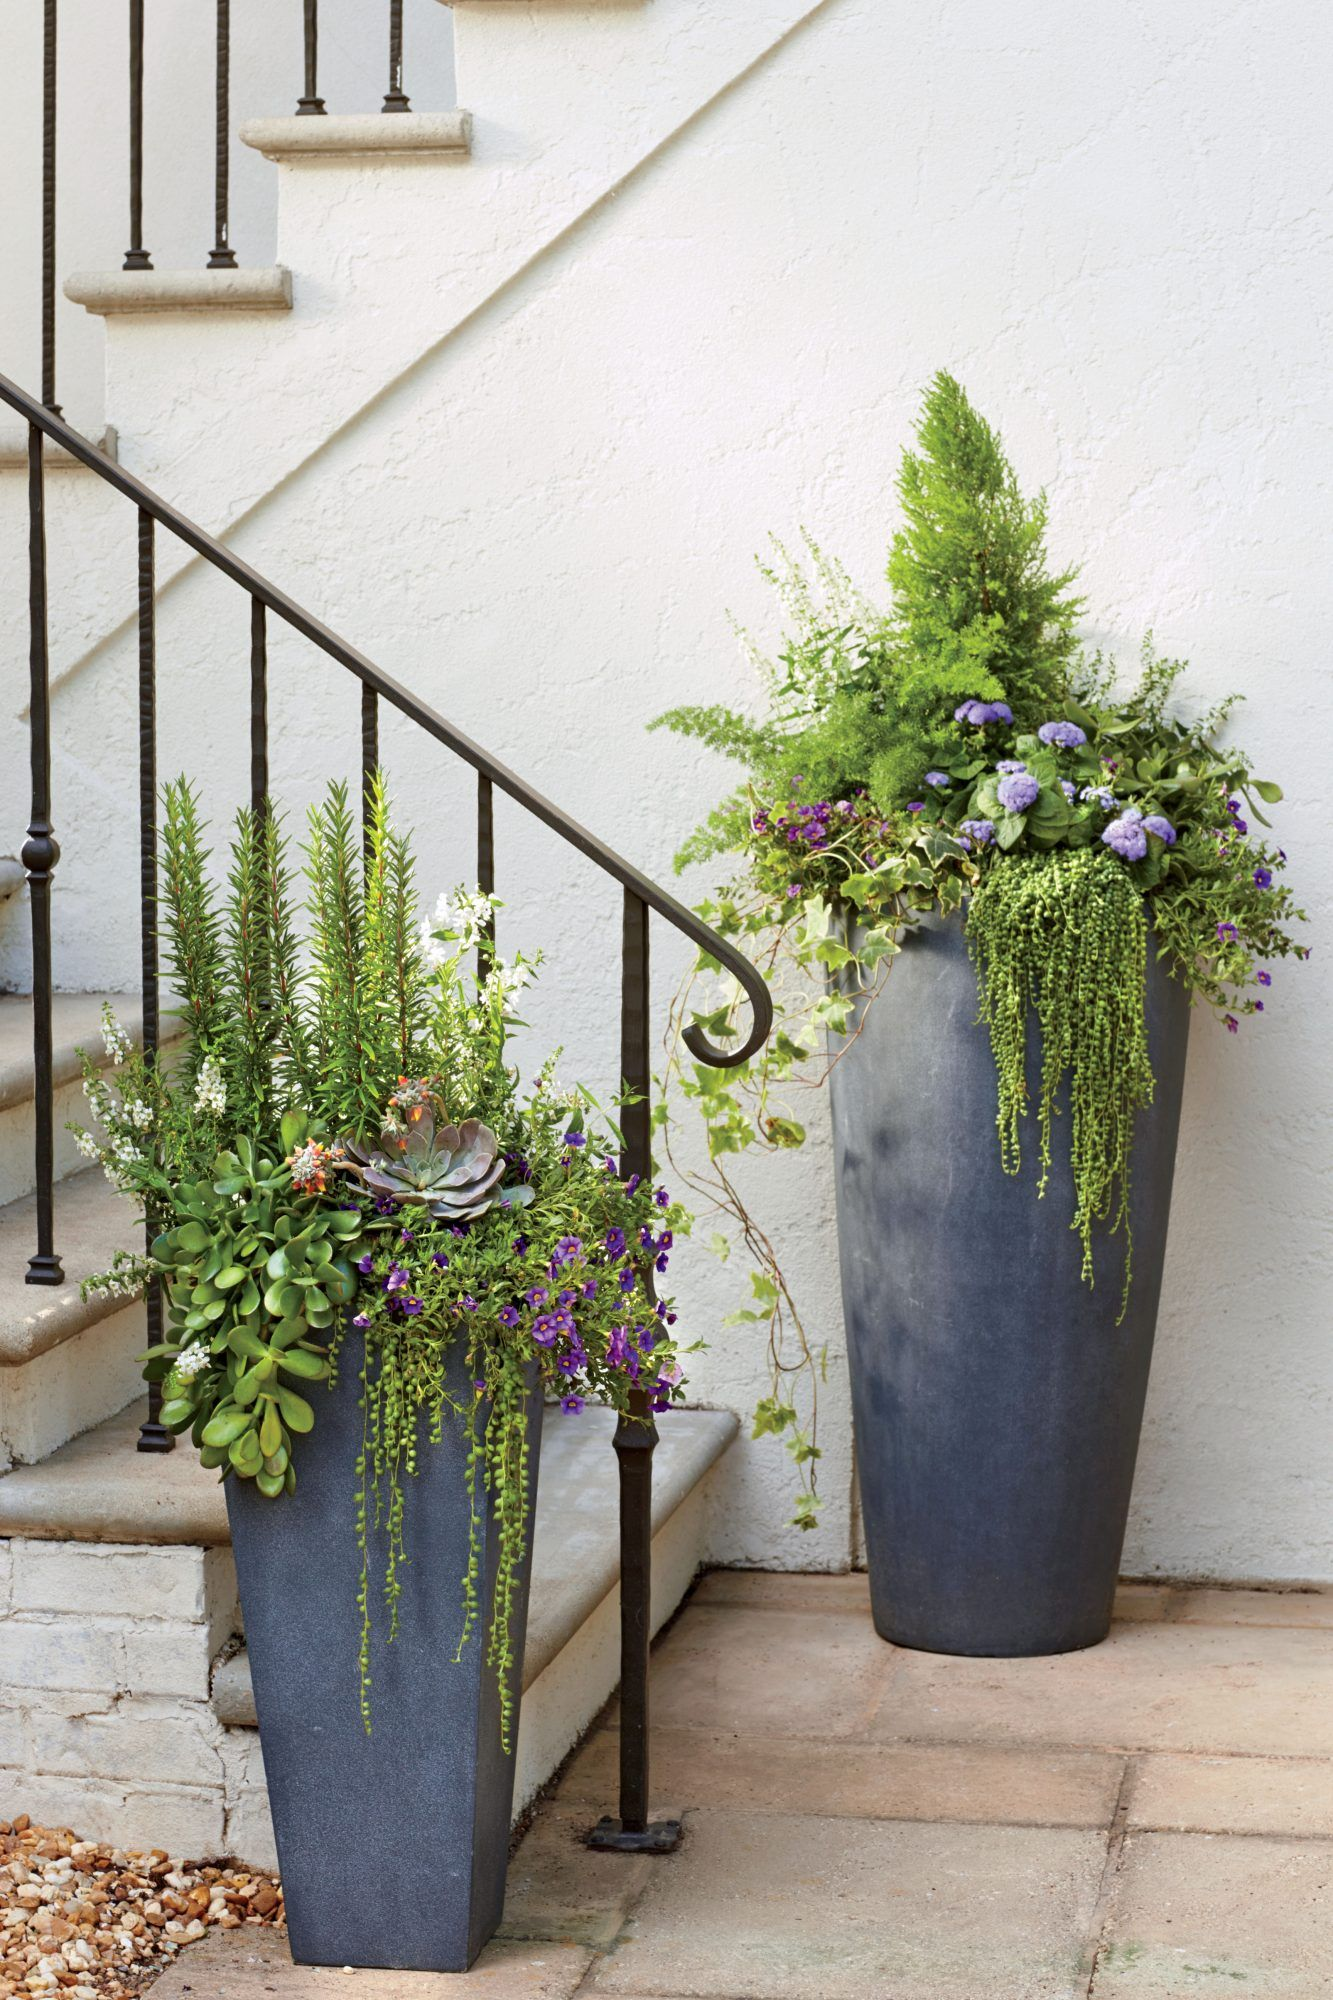 125 Container Gardening Ideas | Container gardening ...